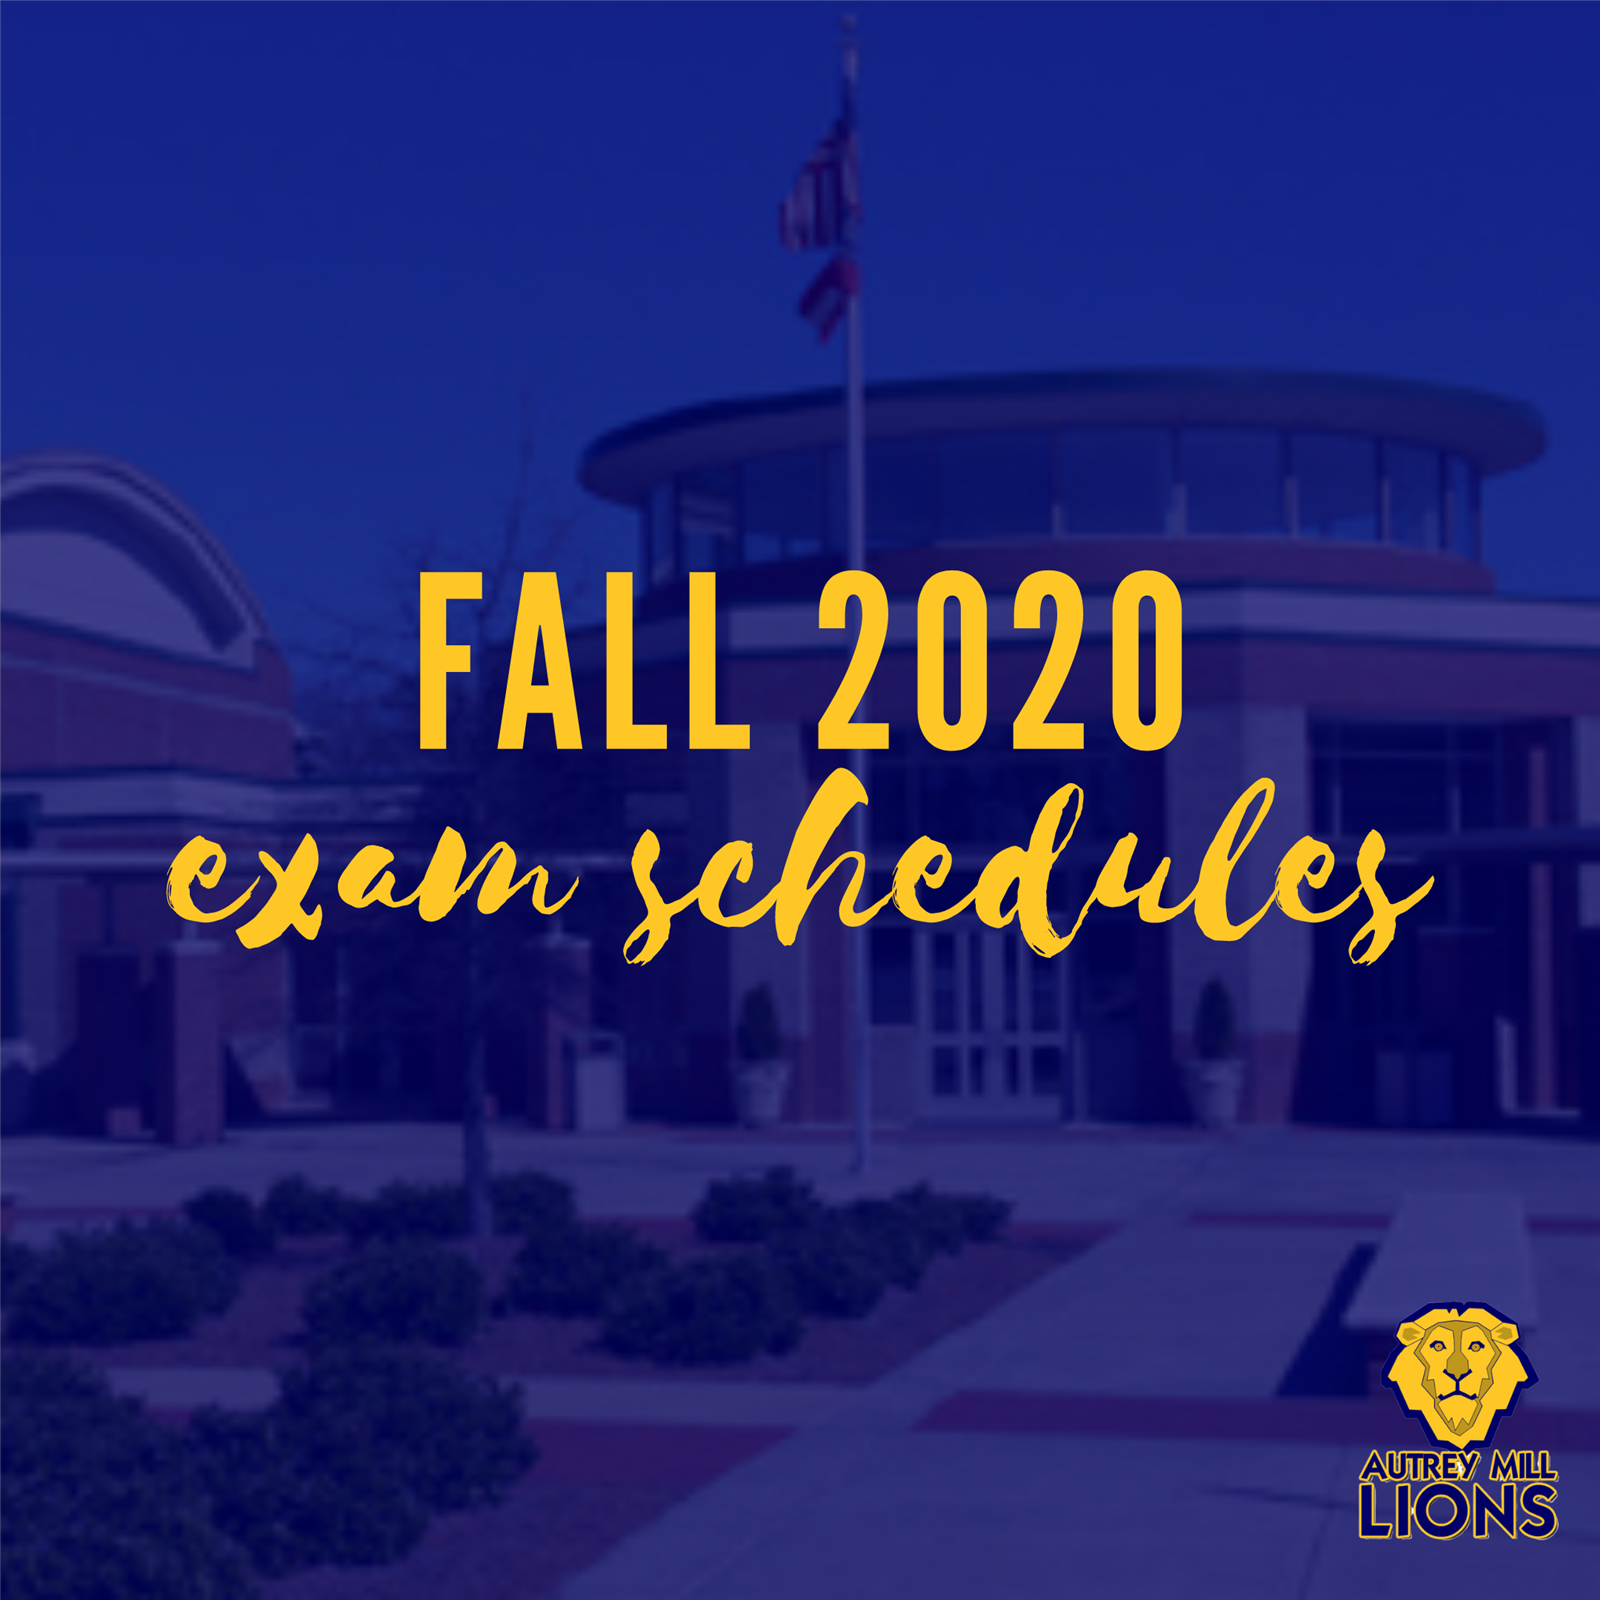 Fall 2020 Exam Schedules